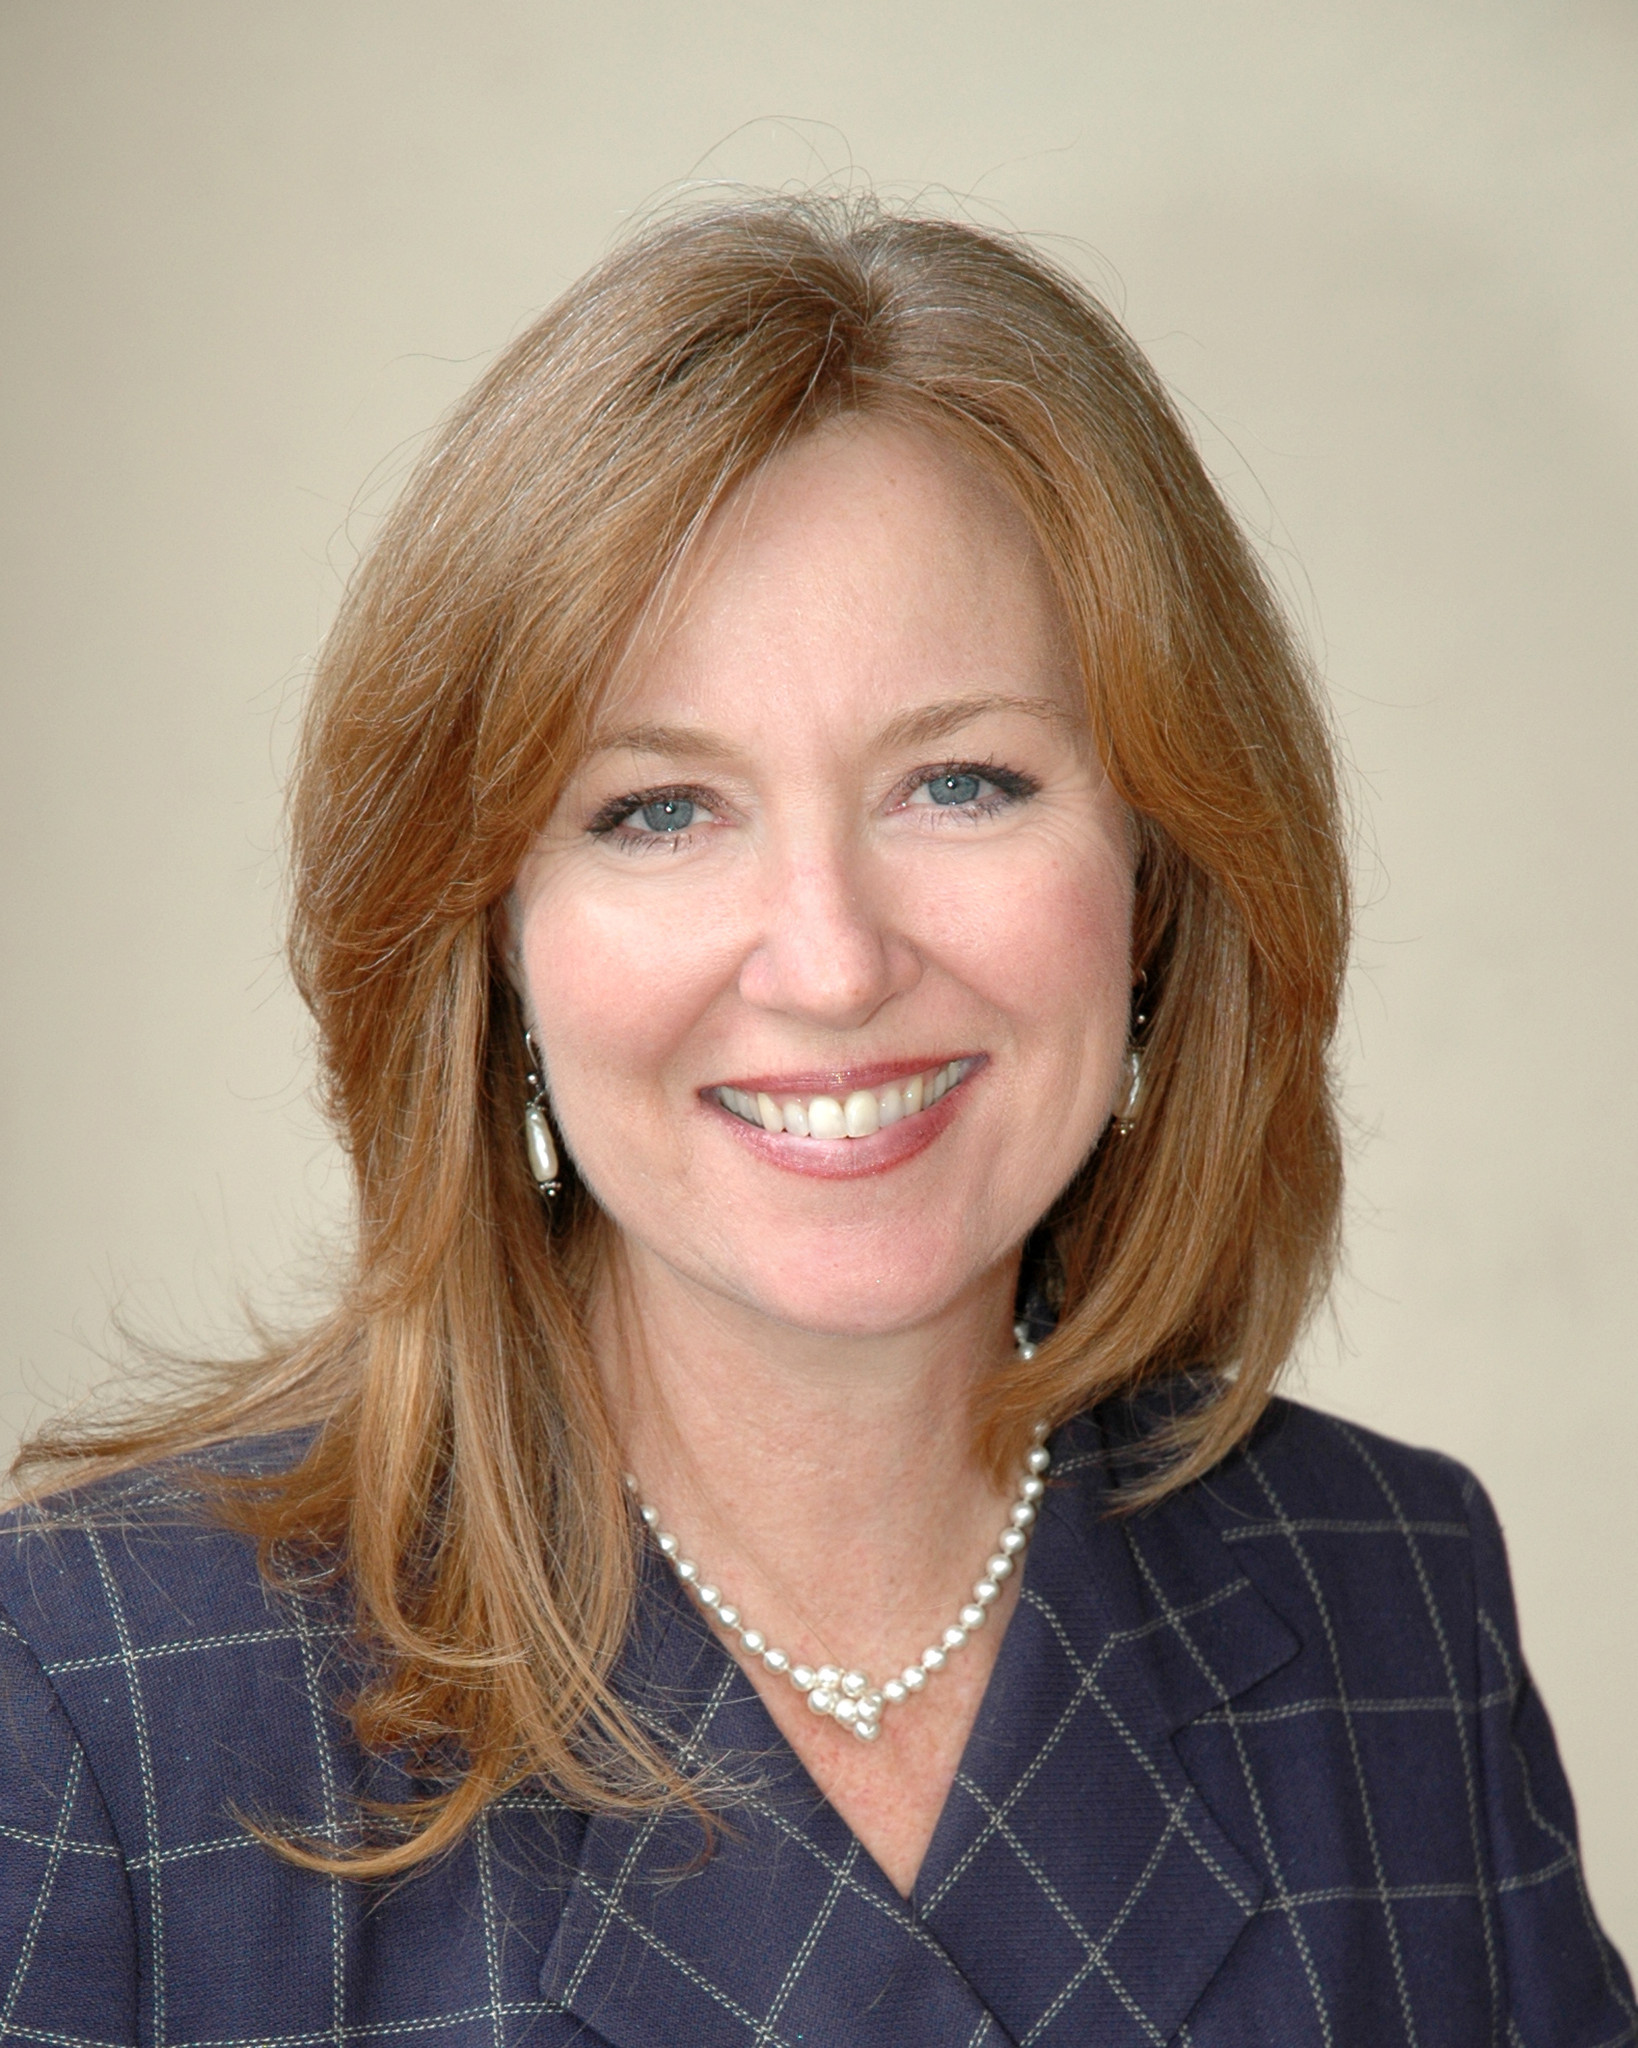 Throughout her tenure, Broward County Mayor Kristin Jacobs has championed issues to improve and protect Broward County's quality of life. As a neighborhood activist, she was elected to the County Commission in 1998 to represent the residents of District 2. She quickly earned the trust of her...